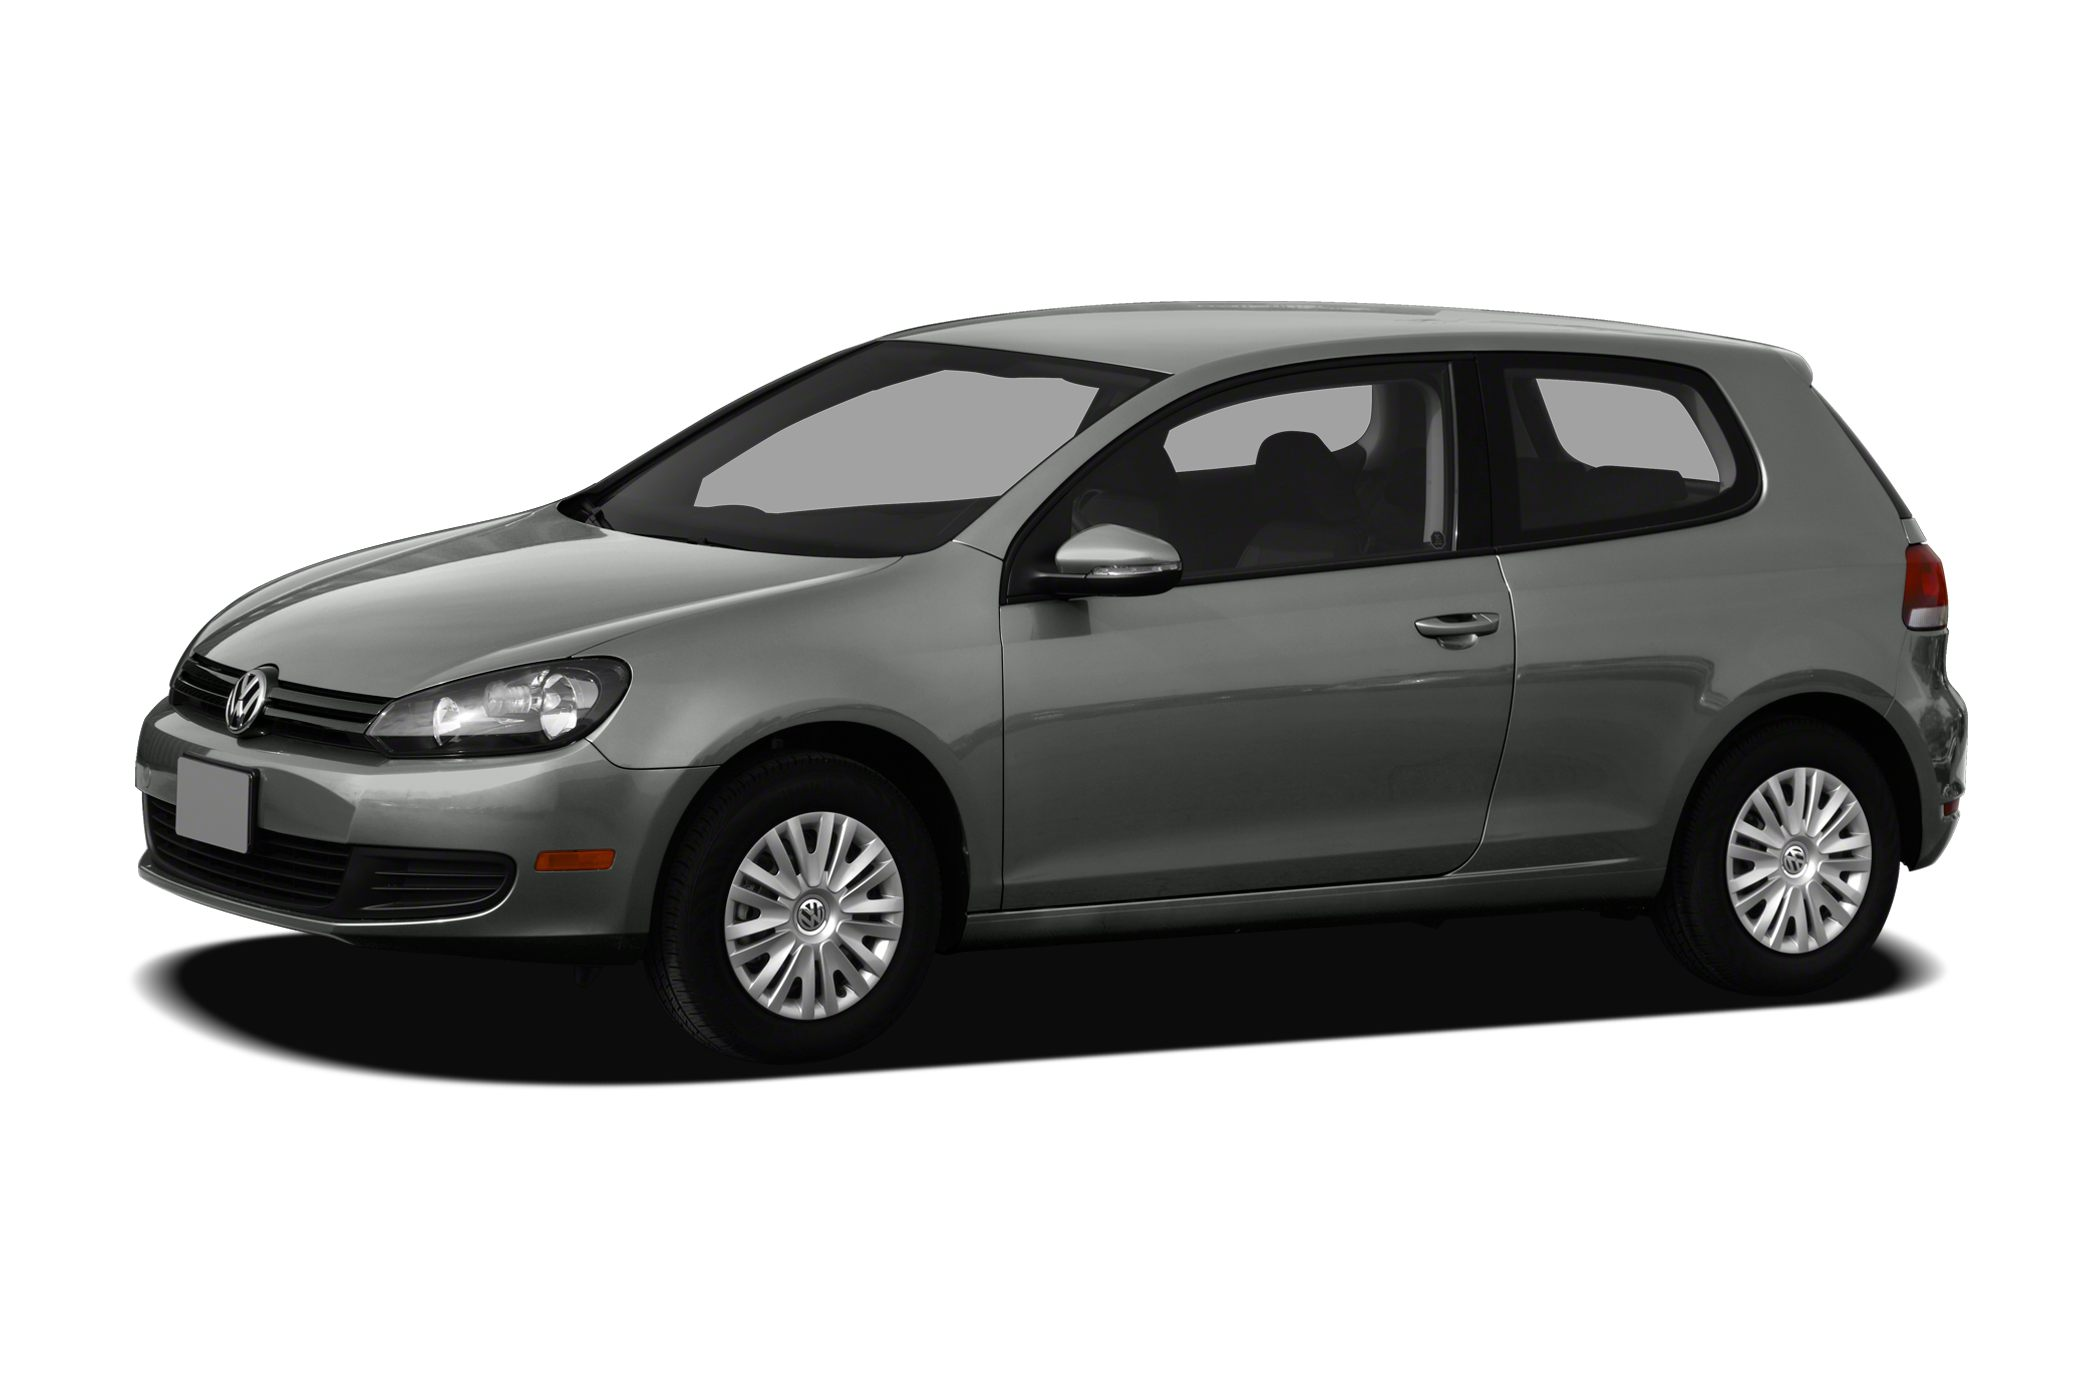 2012 Volkswagen Golf 2.5L Hatchback for sale in Lebanon for $0 with 32,565 miles